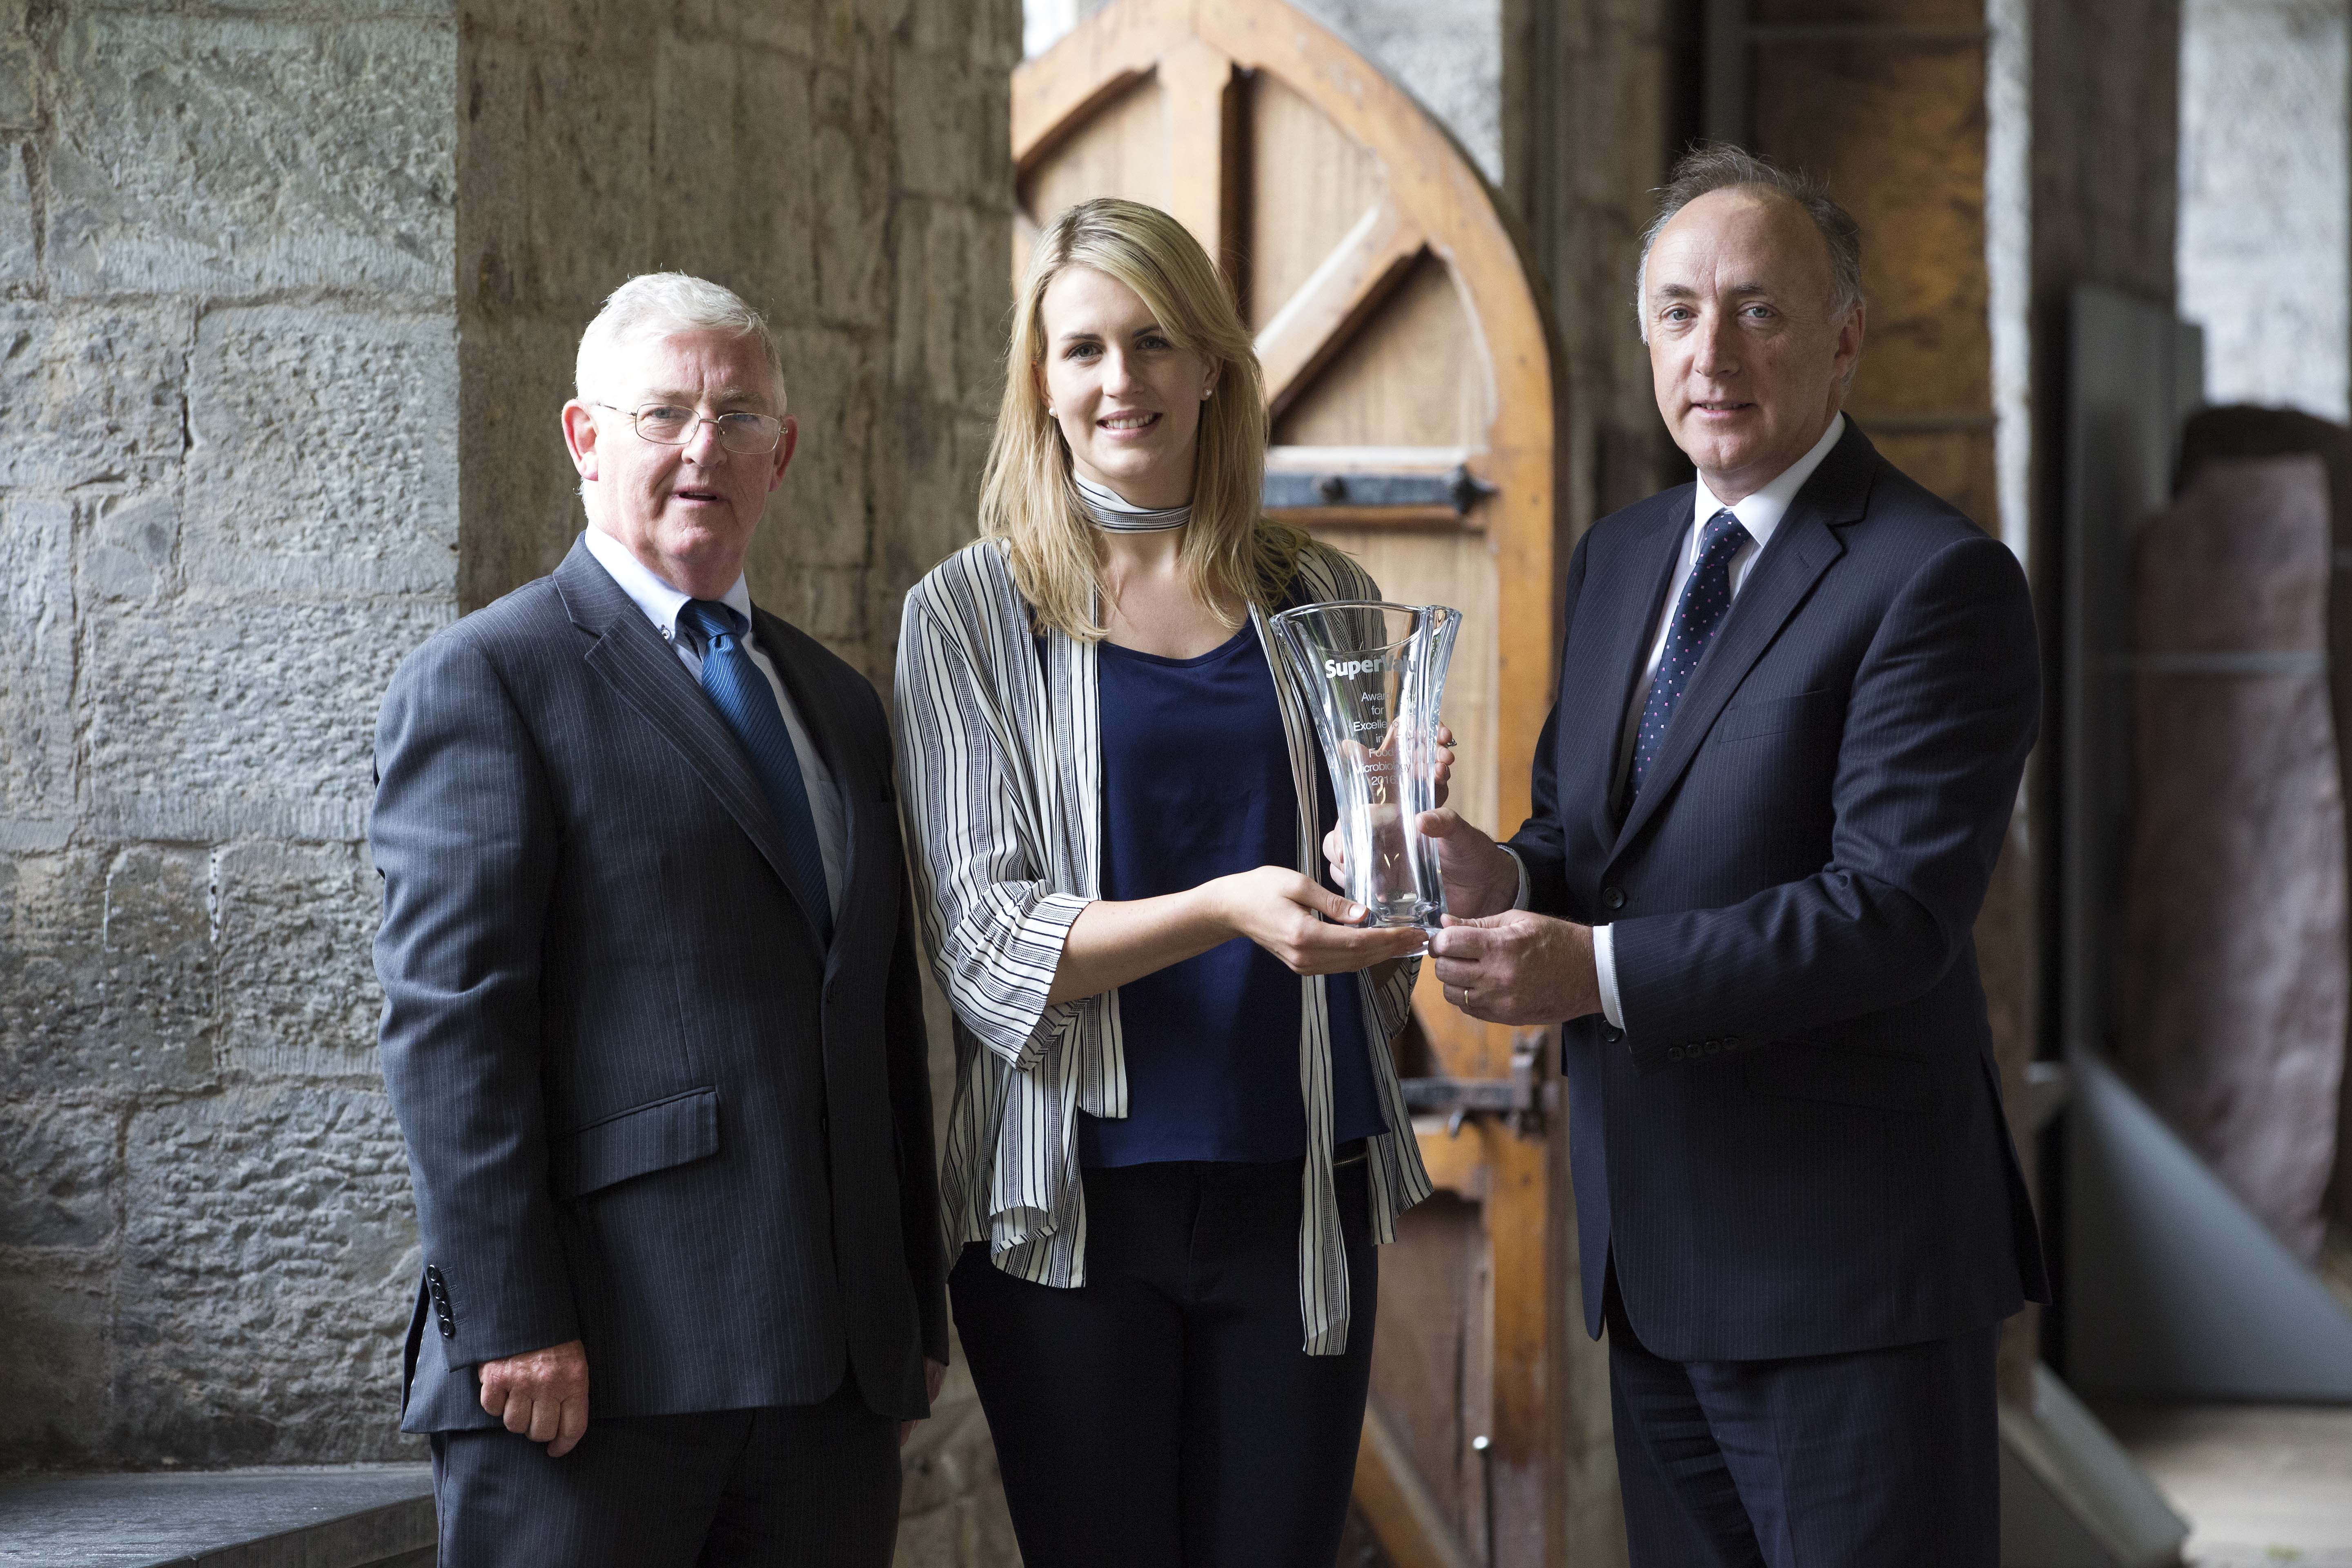 Presentation of SuperValu Award for Excellence in Food Microbiology 2016